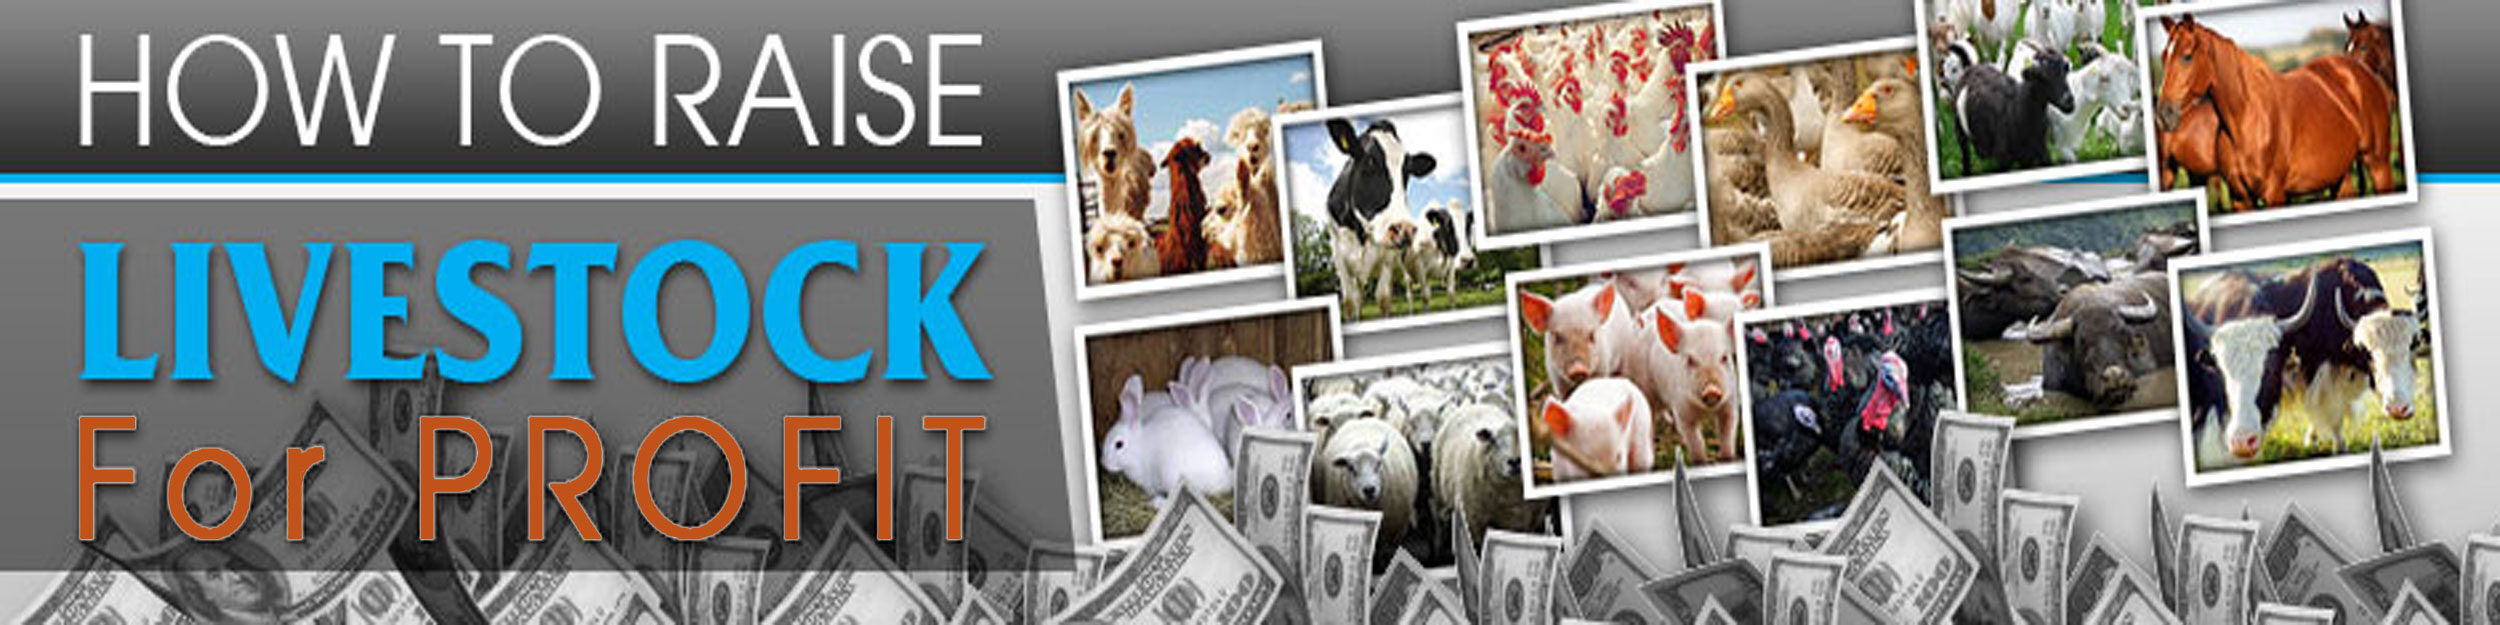 How To Raise Livestock For Profit